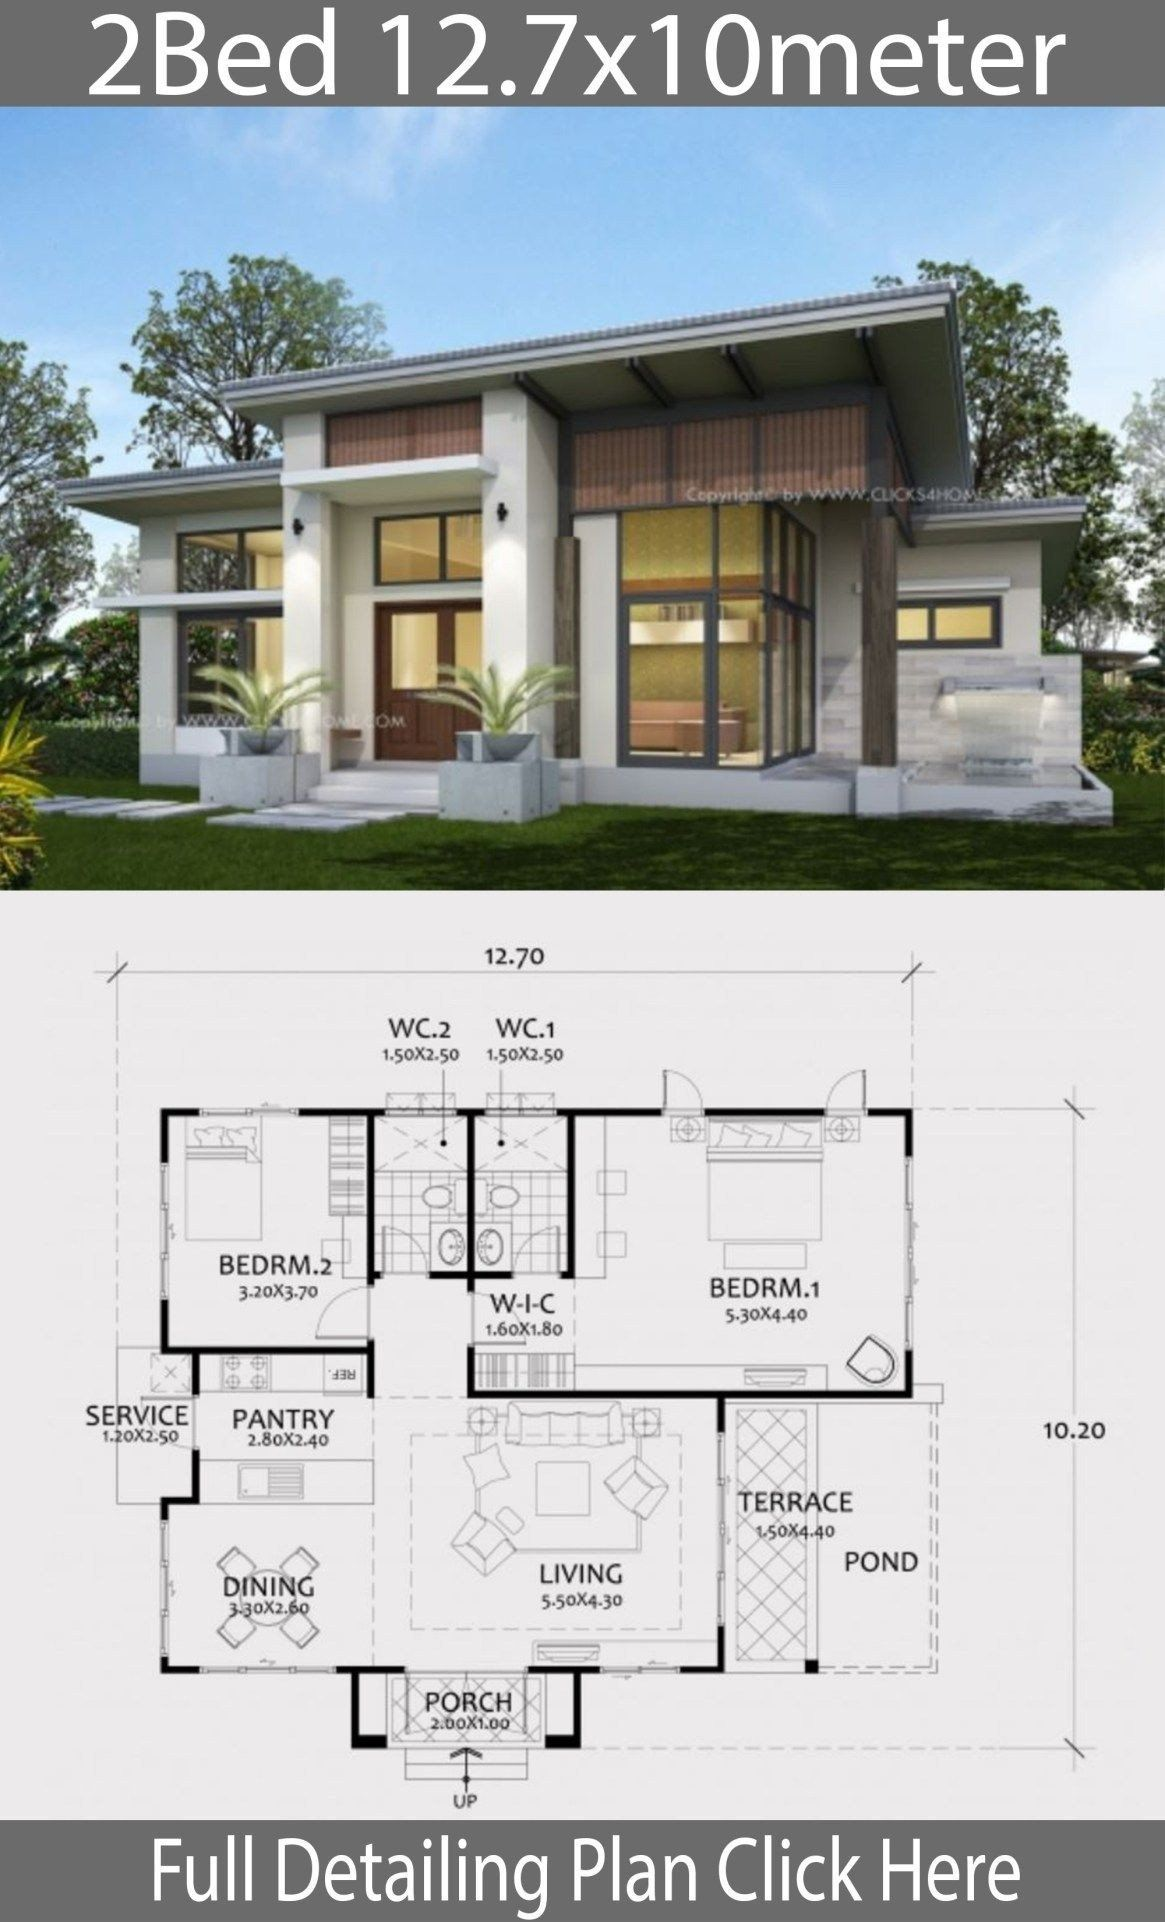 Modern House Plans Bungalow Home Design Plan 12 7x10m With 2 Bedrooms With Images Arsitektur Rumah Arsitektur Denah Desain Rumah